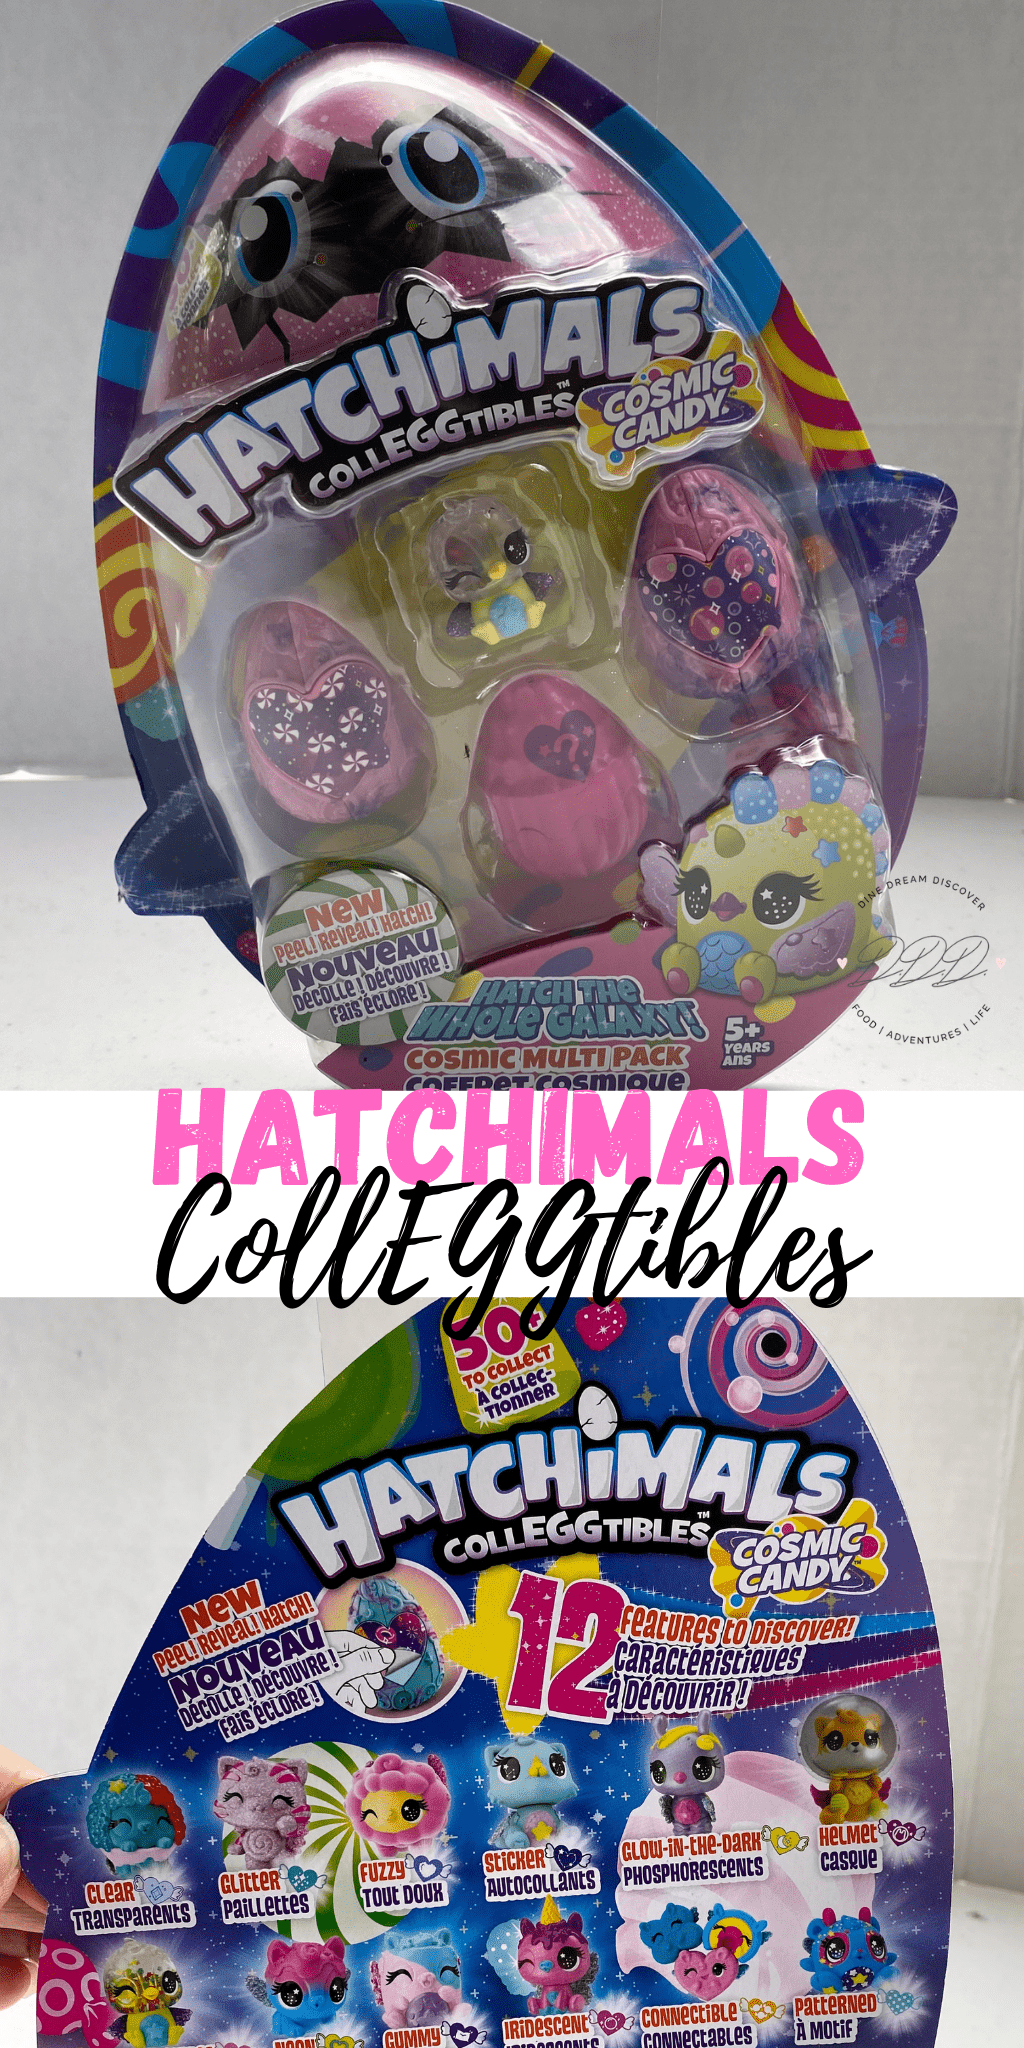 Hatchimals CollEGGtibles Cosmic Candy